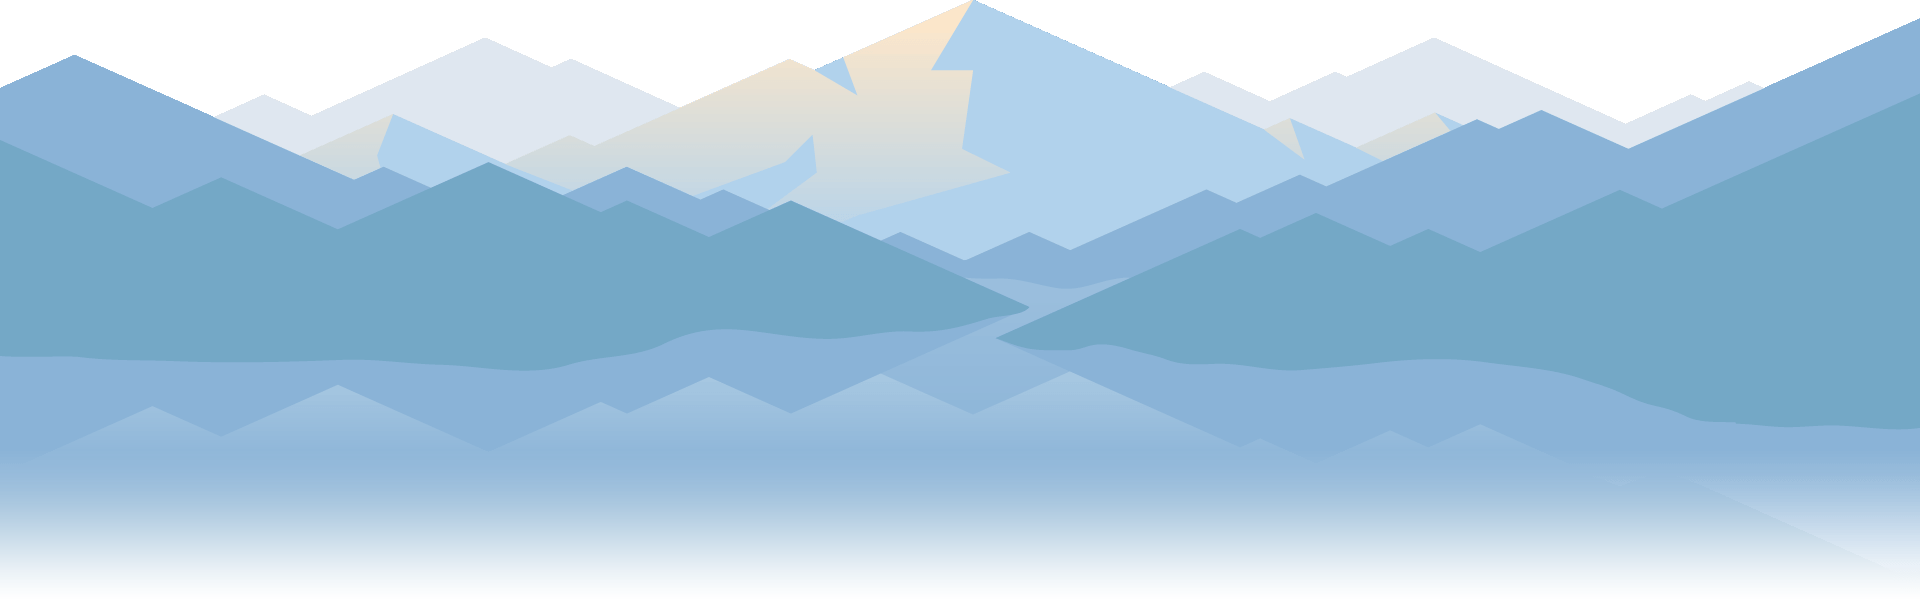 Large Mountains